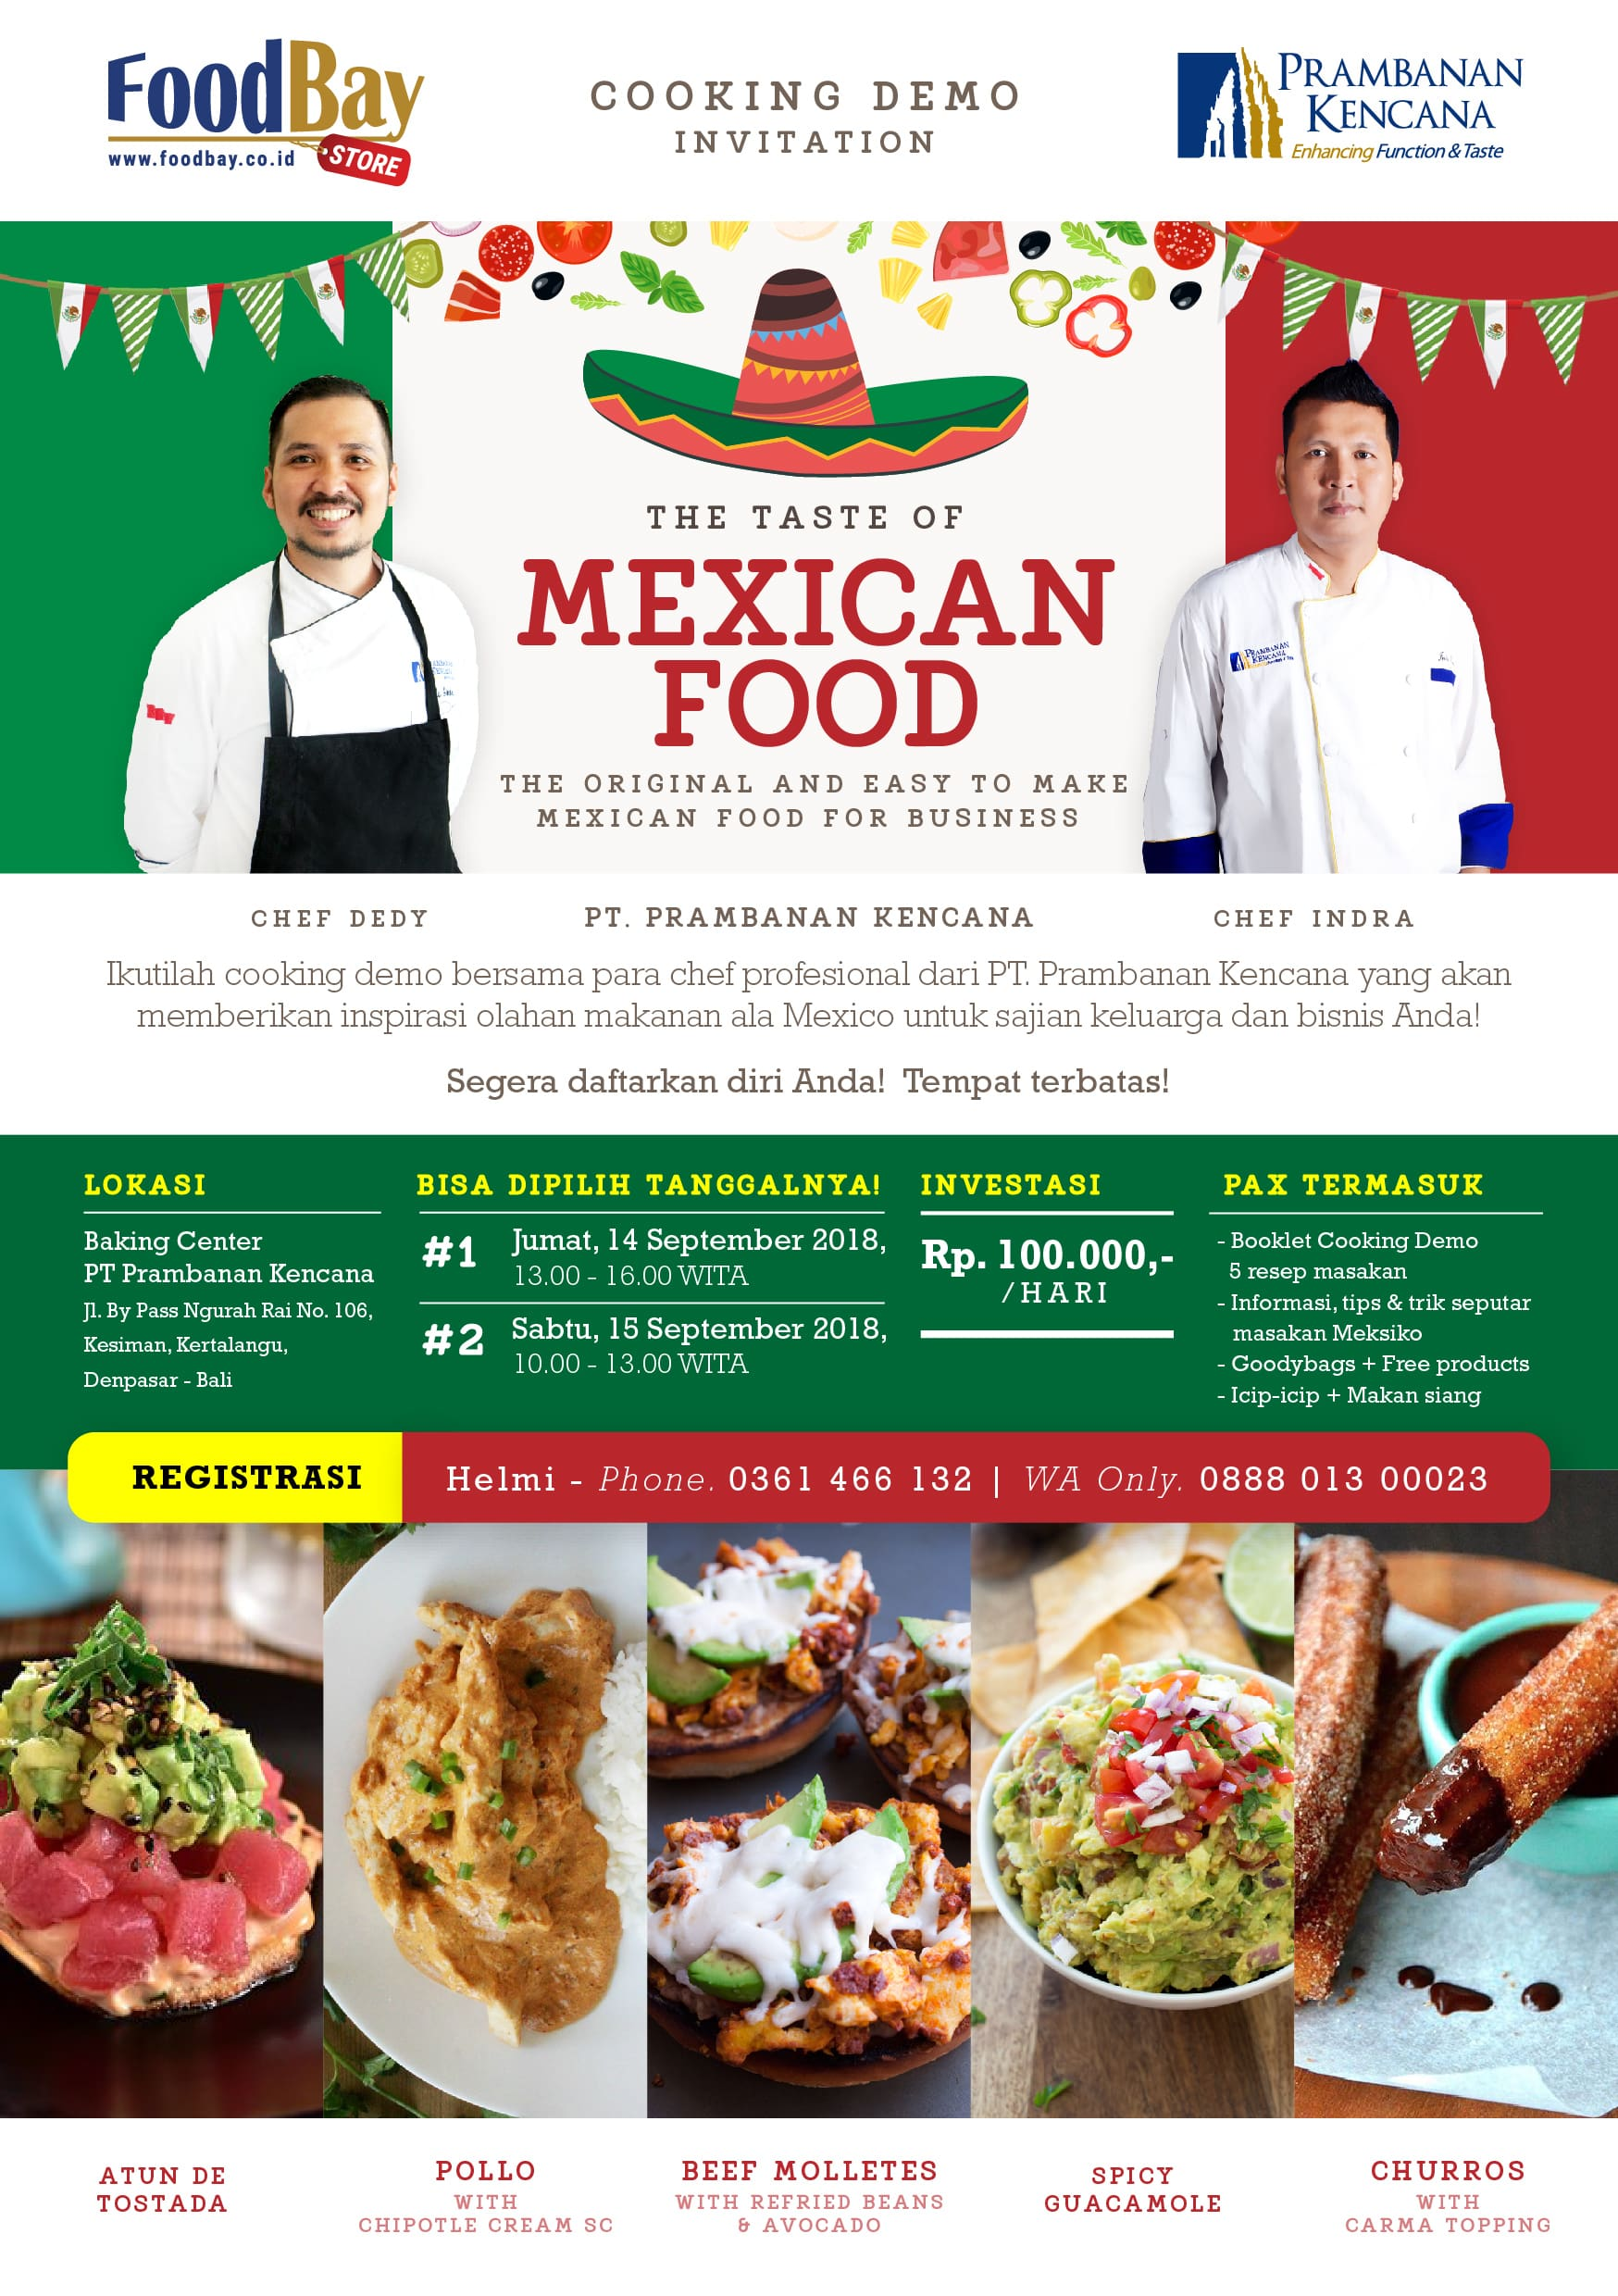 Cooking Demo - The Taste of Mexican Food image